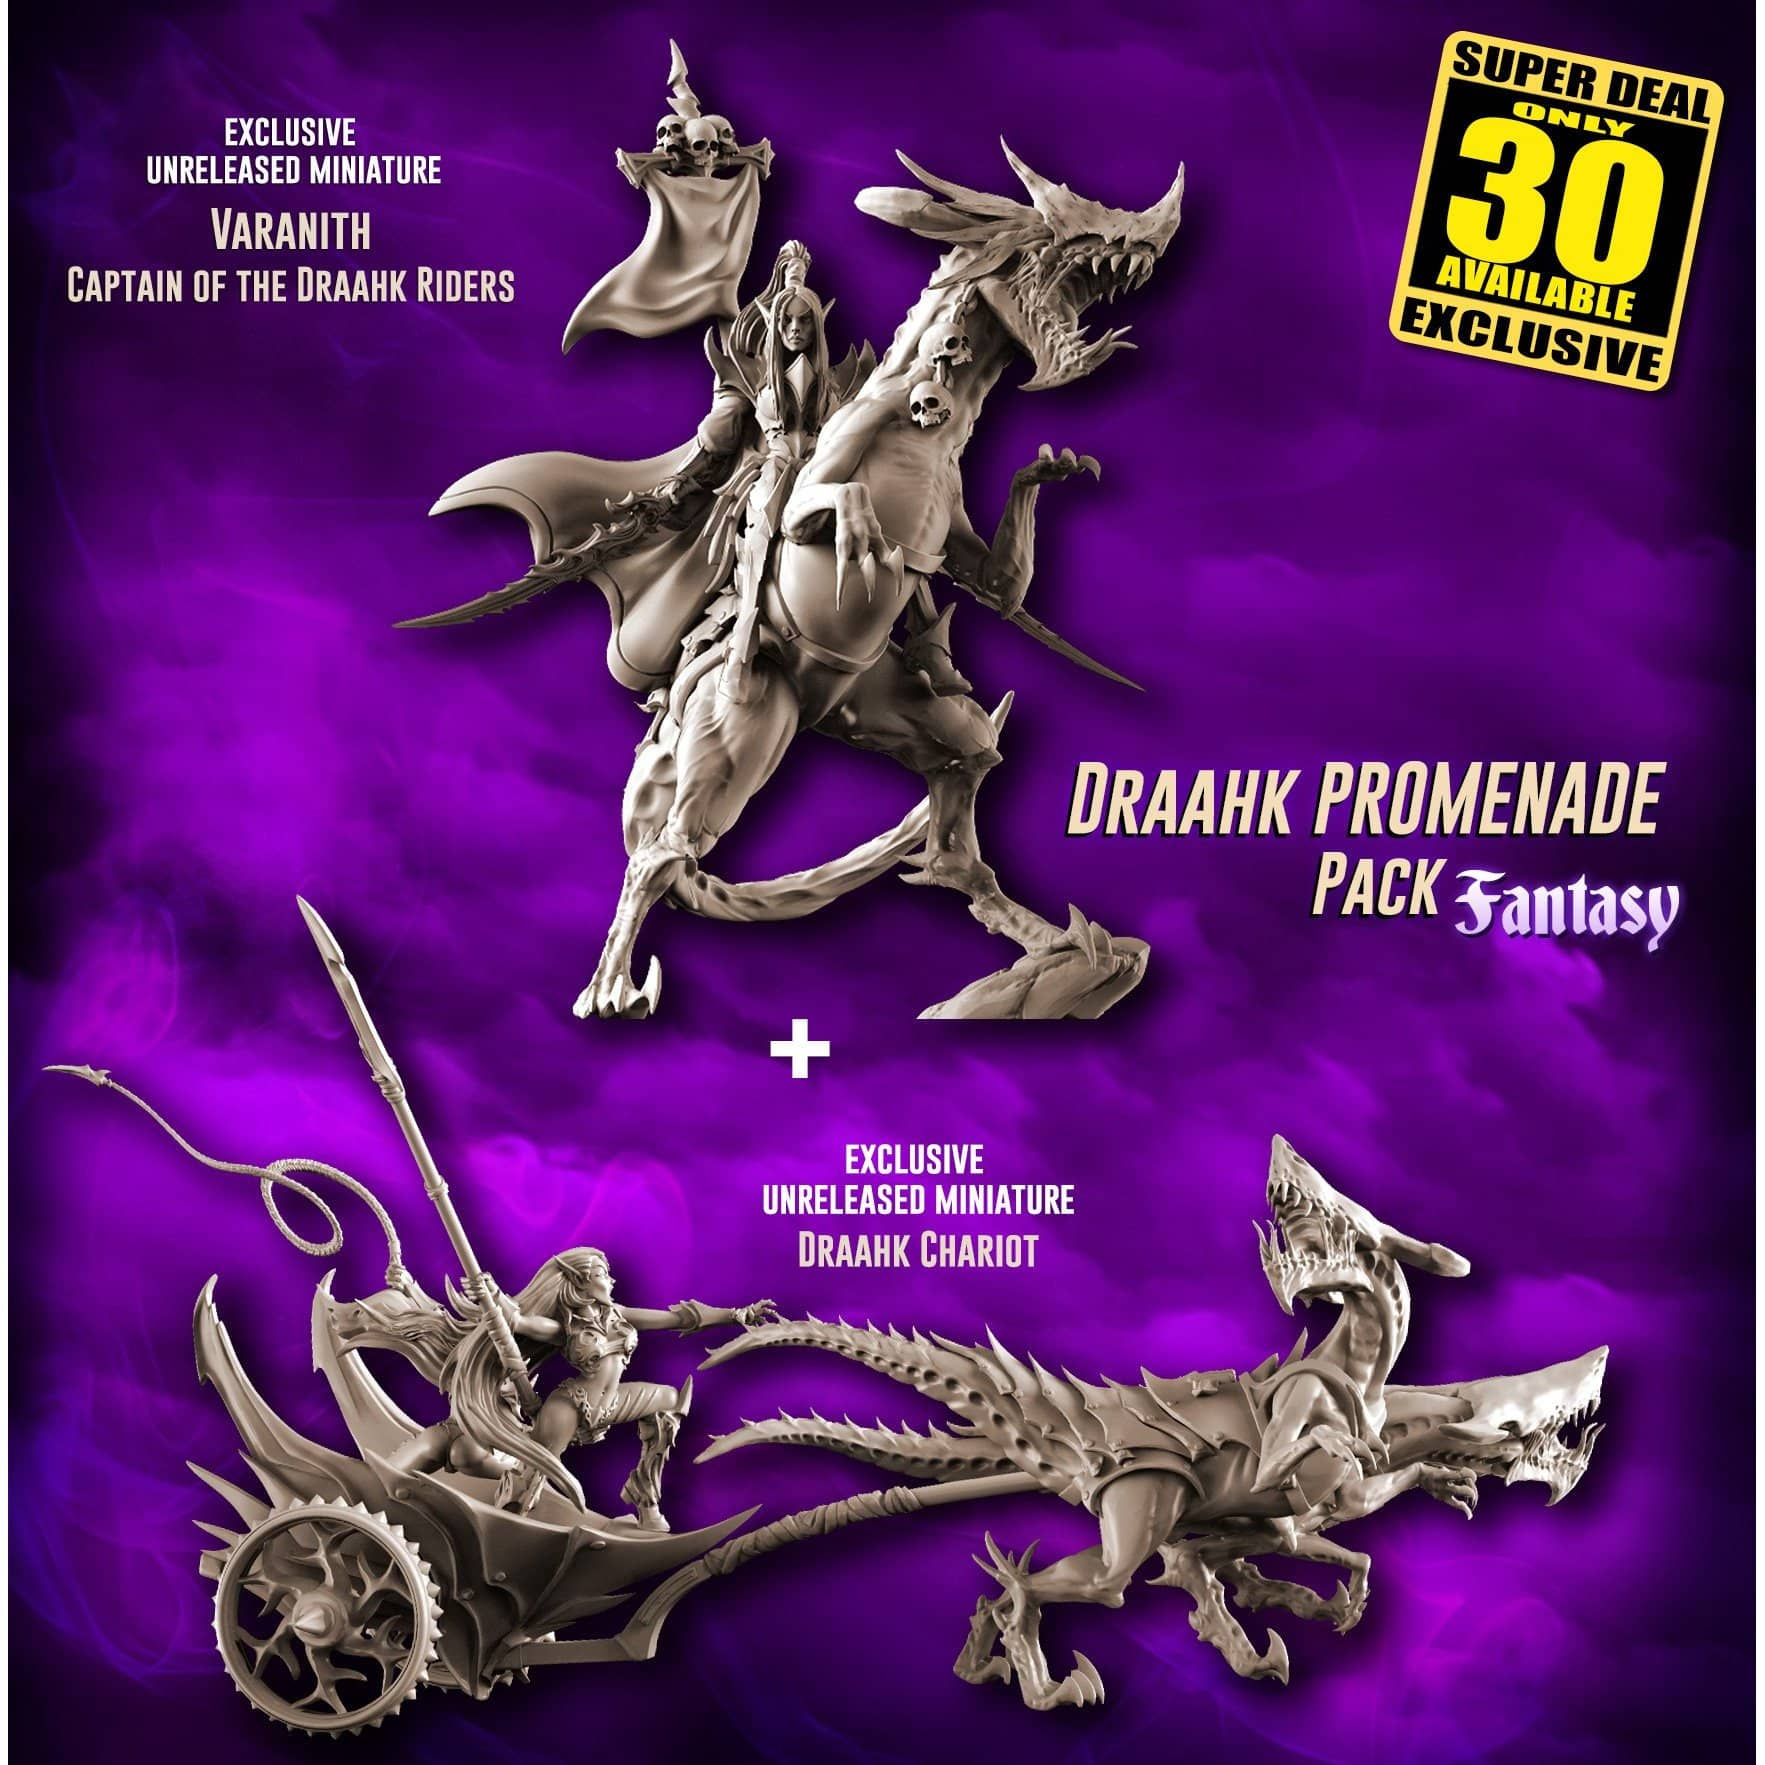 EXCLUSIVE Draahk PROMENADE Pack (DE - F)